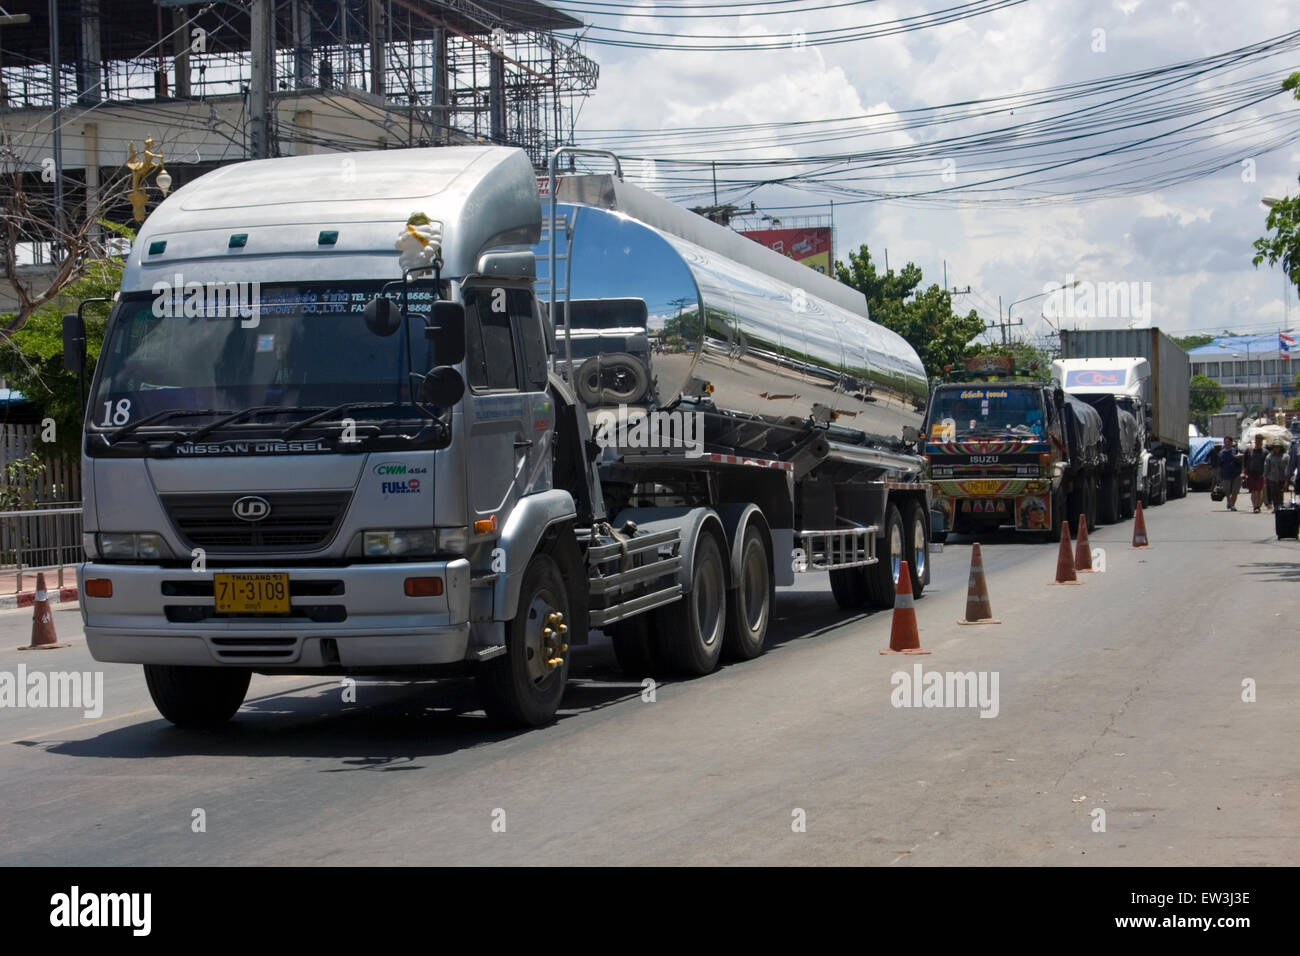 Trucks carrying cargo, including fuel, arrive at the